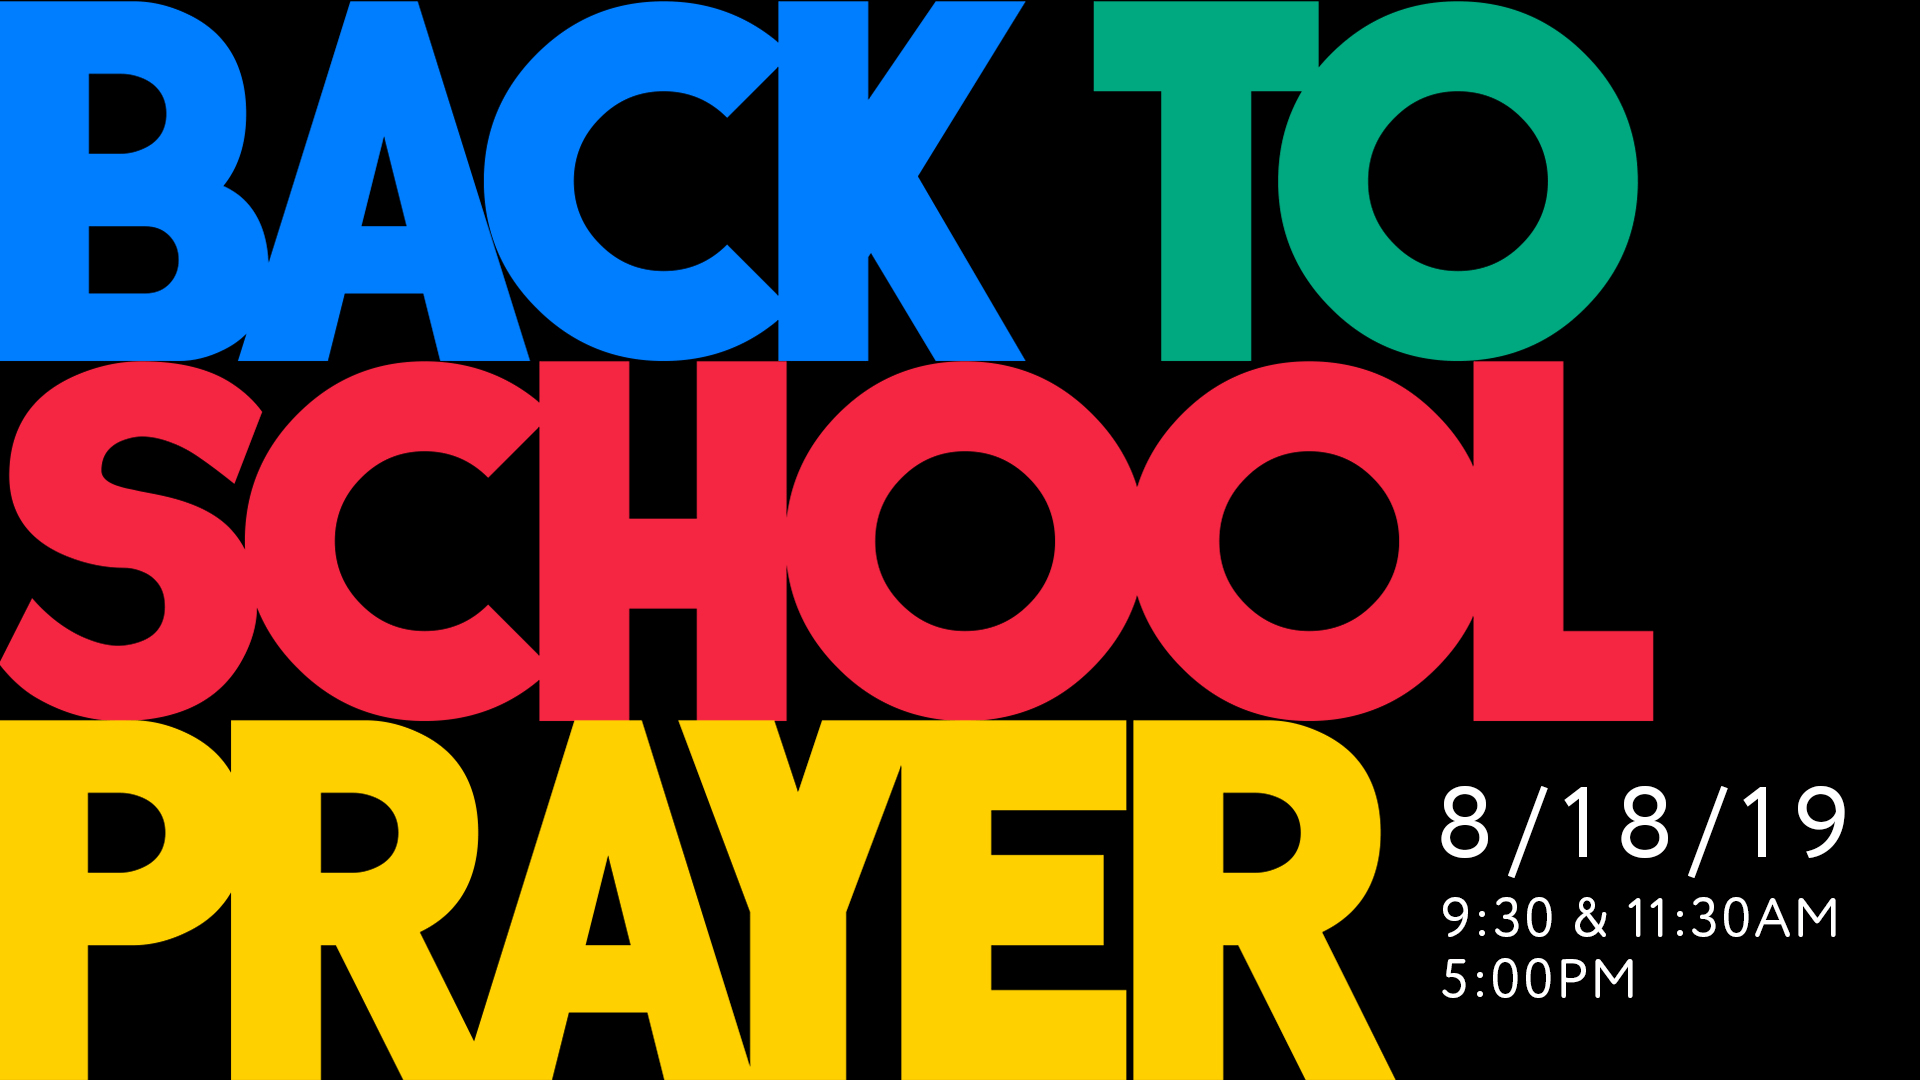 Back to School Prayer at the Orange County campus